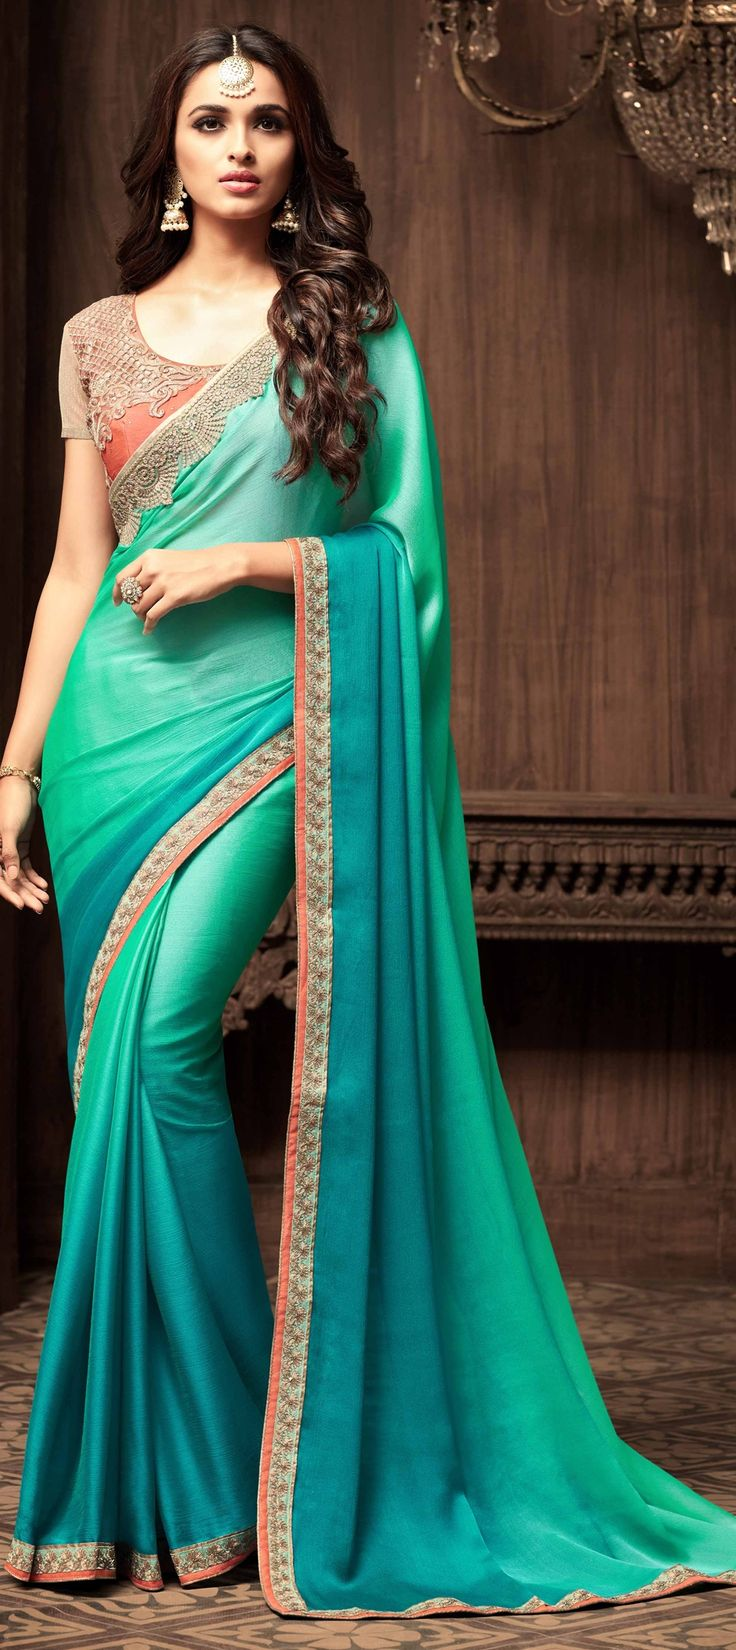 756176 Blue, Green color family Embroidered Sarees, Party Wear Sarees, Silk Sarees in Art Silk, Faux Chiffon fabric with Lace, Machine Embroidery, Thread work with matching unstitched blouse.